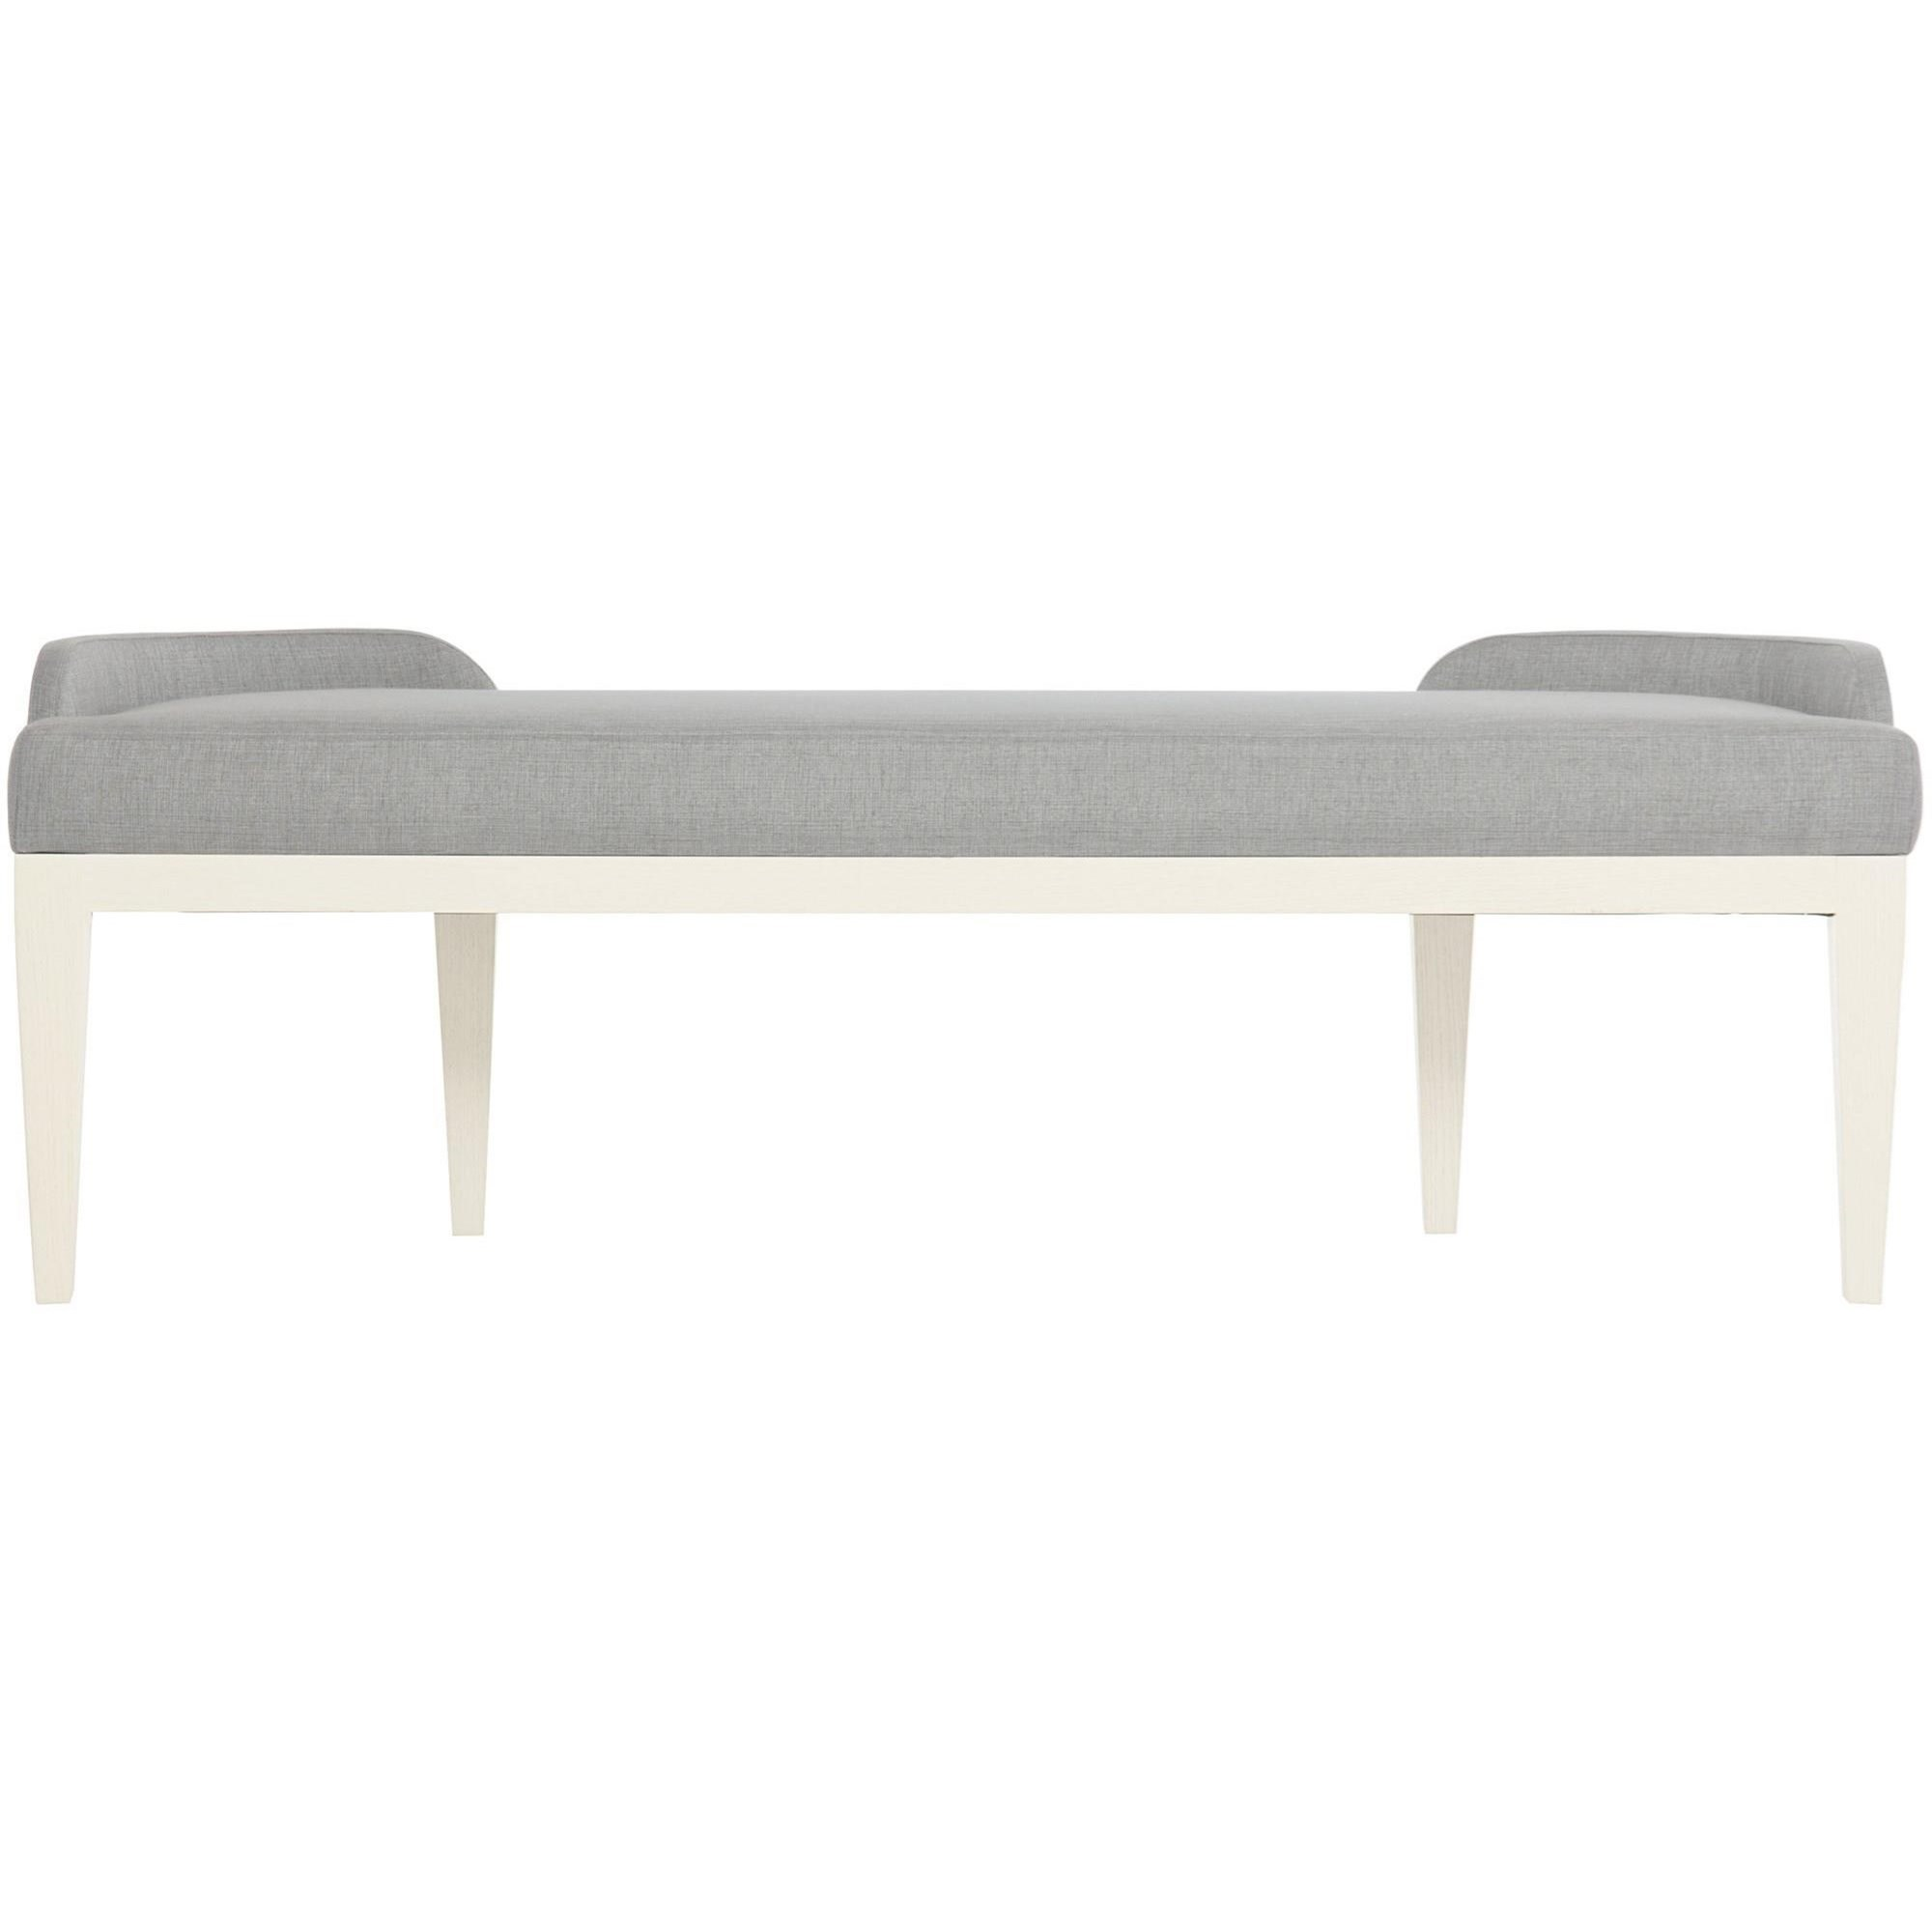 Calista Bench by Bernhardt at Fisher Home Furnishings